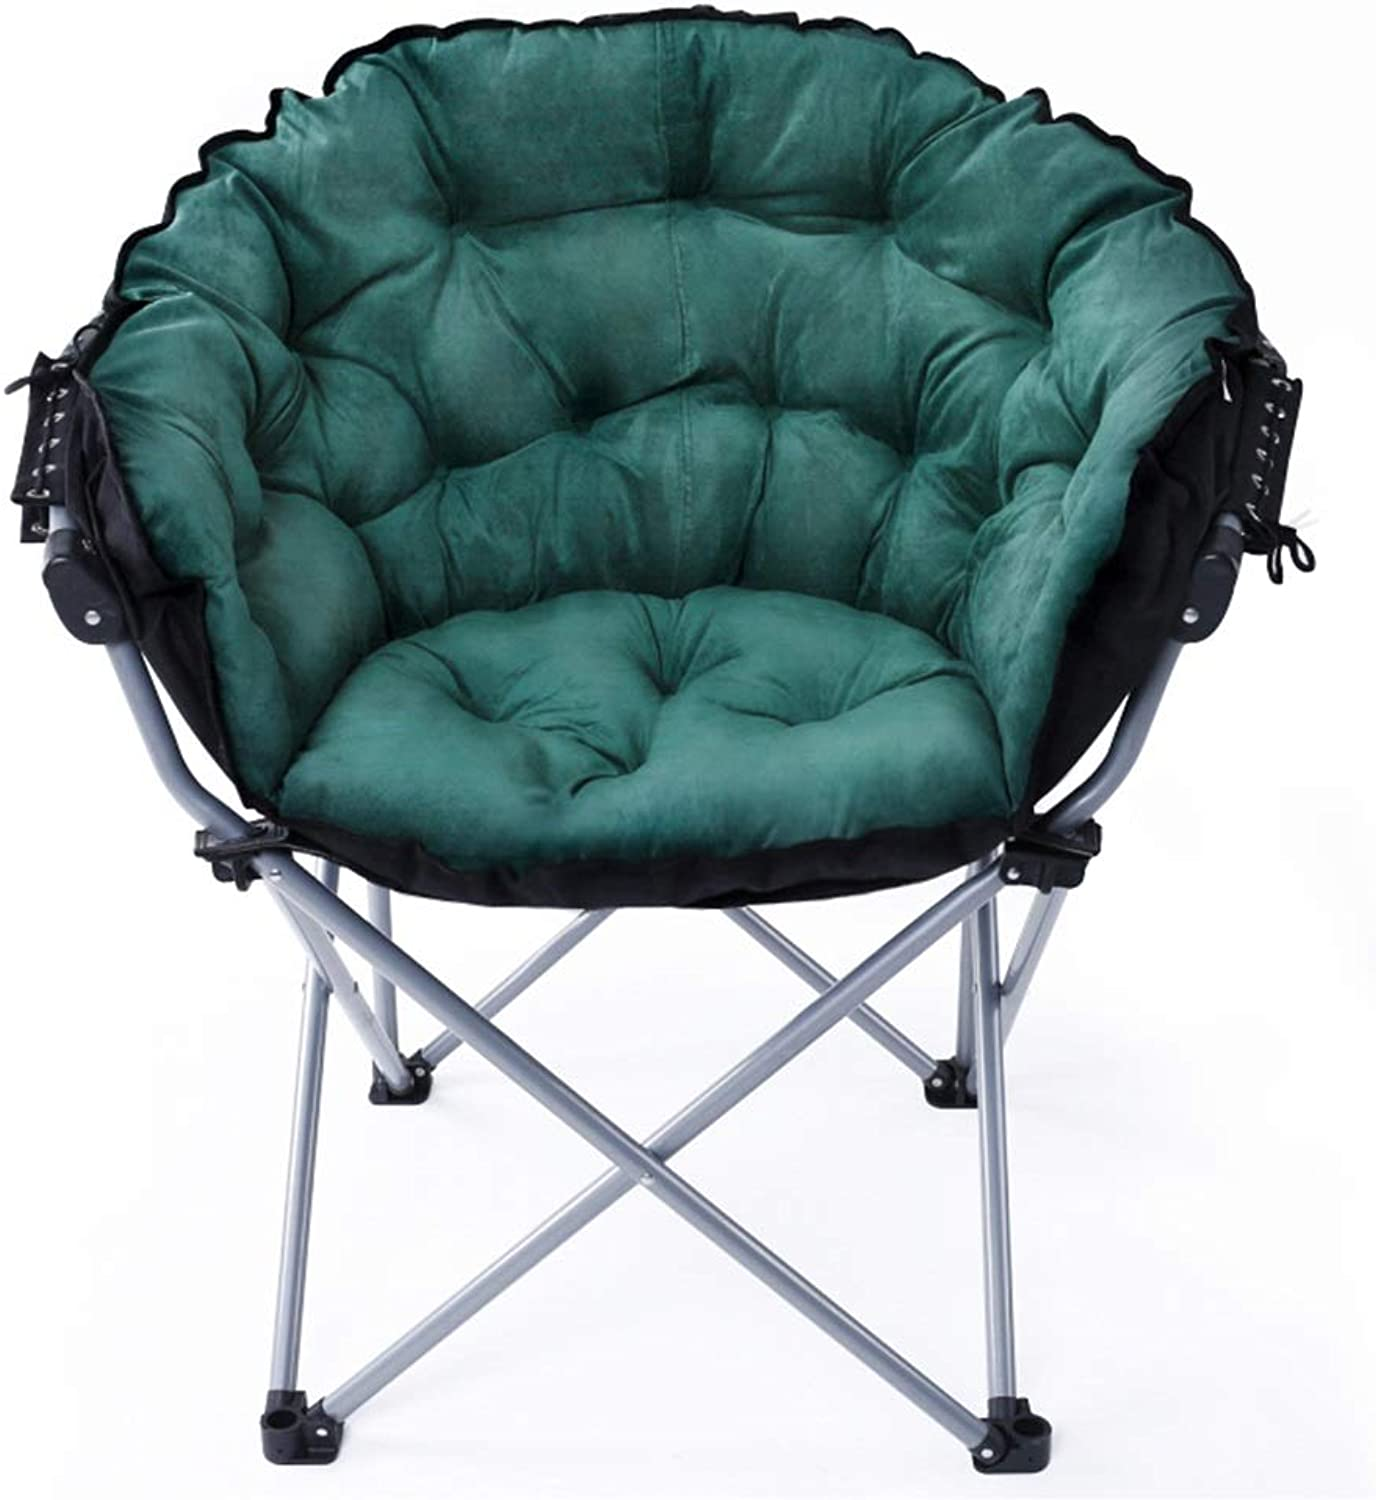 Axdwfd Recliners Lounge Chair, Lazy Couch Single Bedroom Small Sofa Balcony Folding Modern Minimalist Dormitory Computer Sofa Chair 58  46  102cm (color   Green)